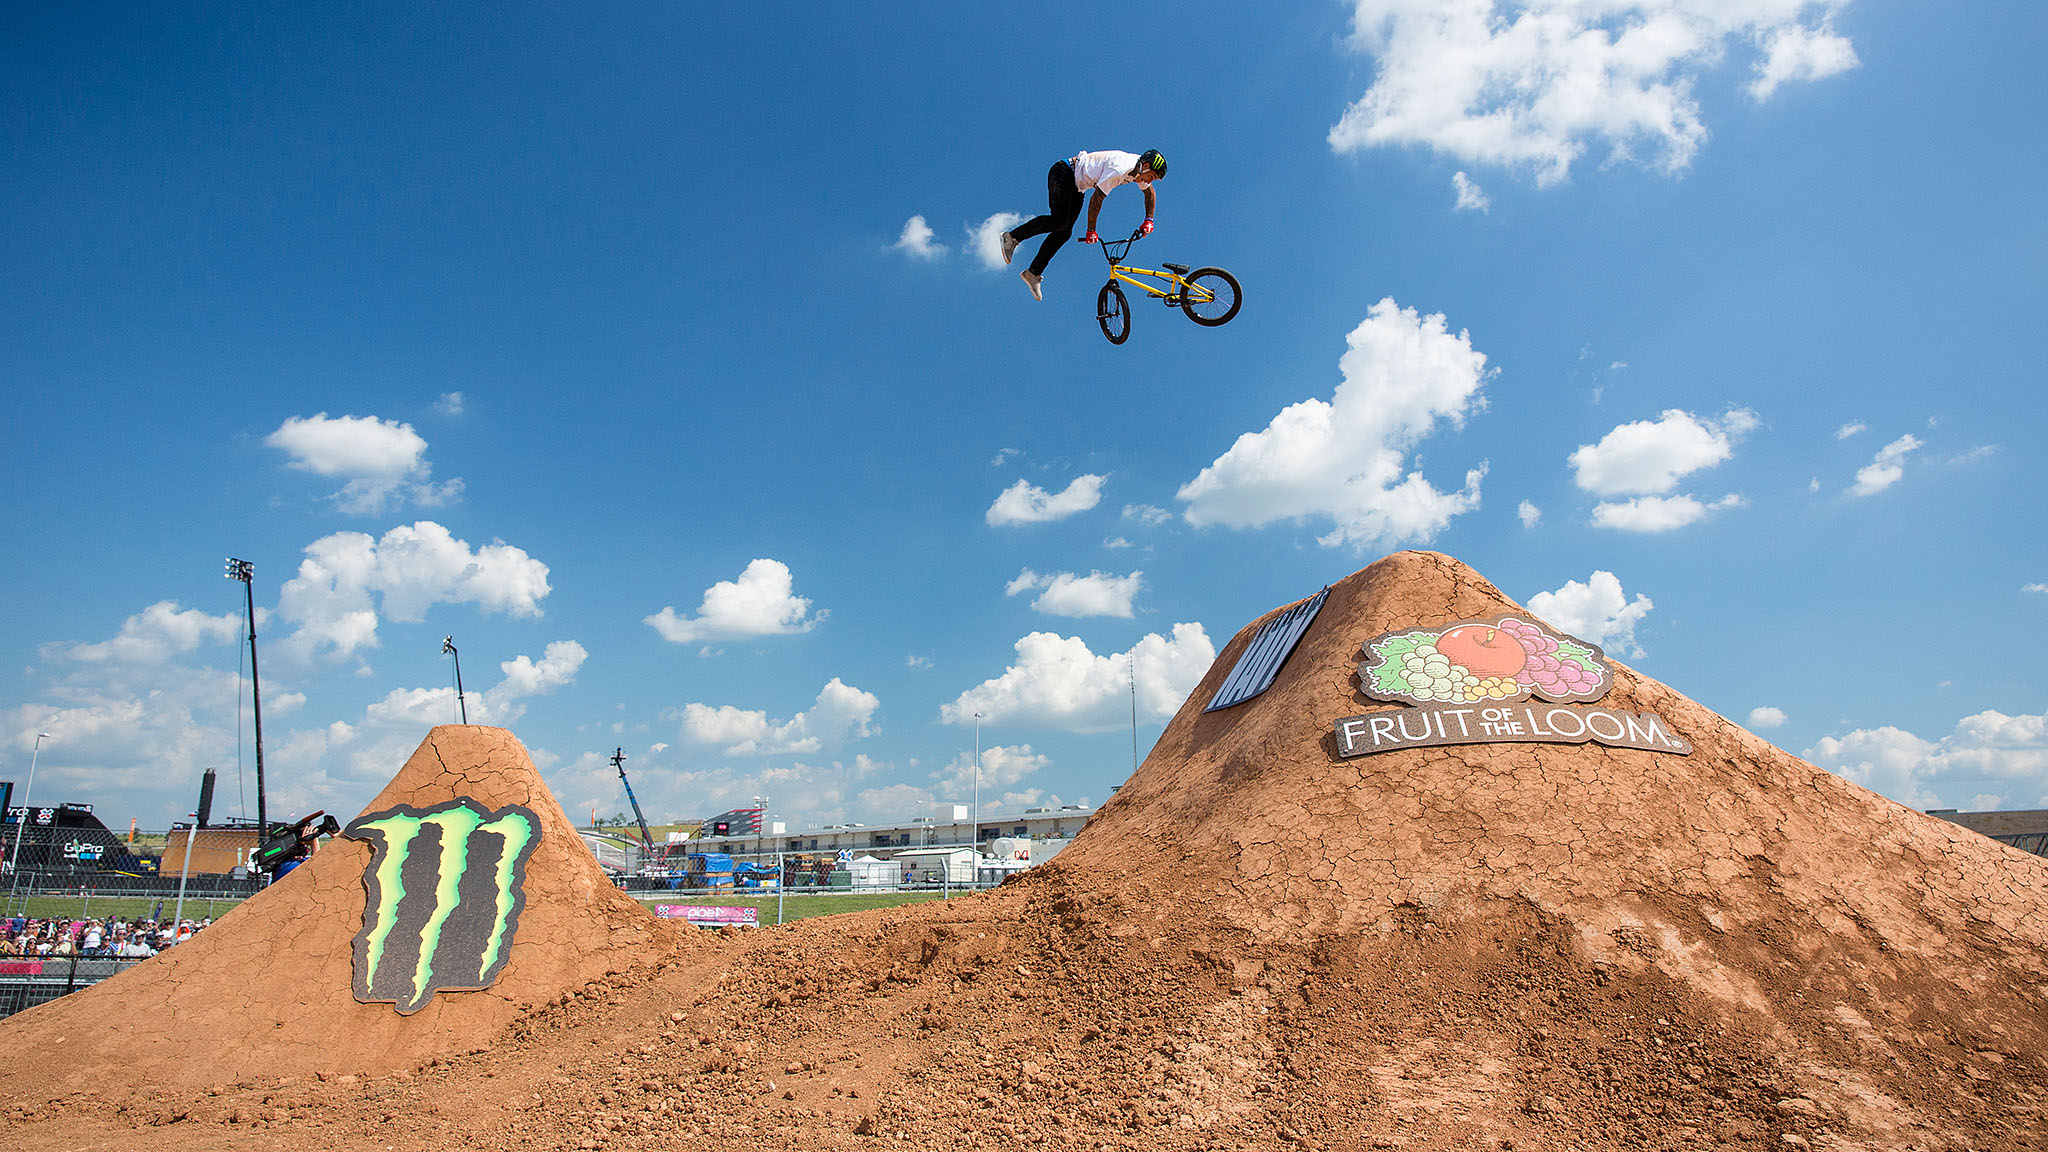 Total BMX pro Kyle Baldock won his third consecutive gold medal in BMX Dirt on Saturday at X Games Austin 2015 in a contest that remained undecided until the very last run. Baldock is now the second rider to win three BMX Dirt golds in a row, after Corey Bohan's victory streak from 2004 to 2006.